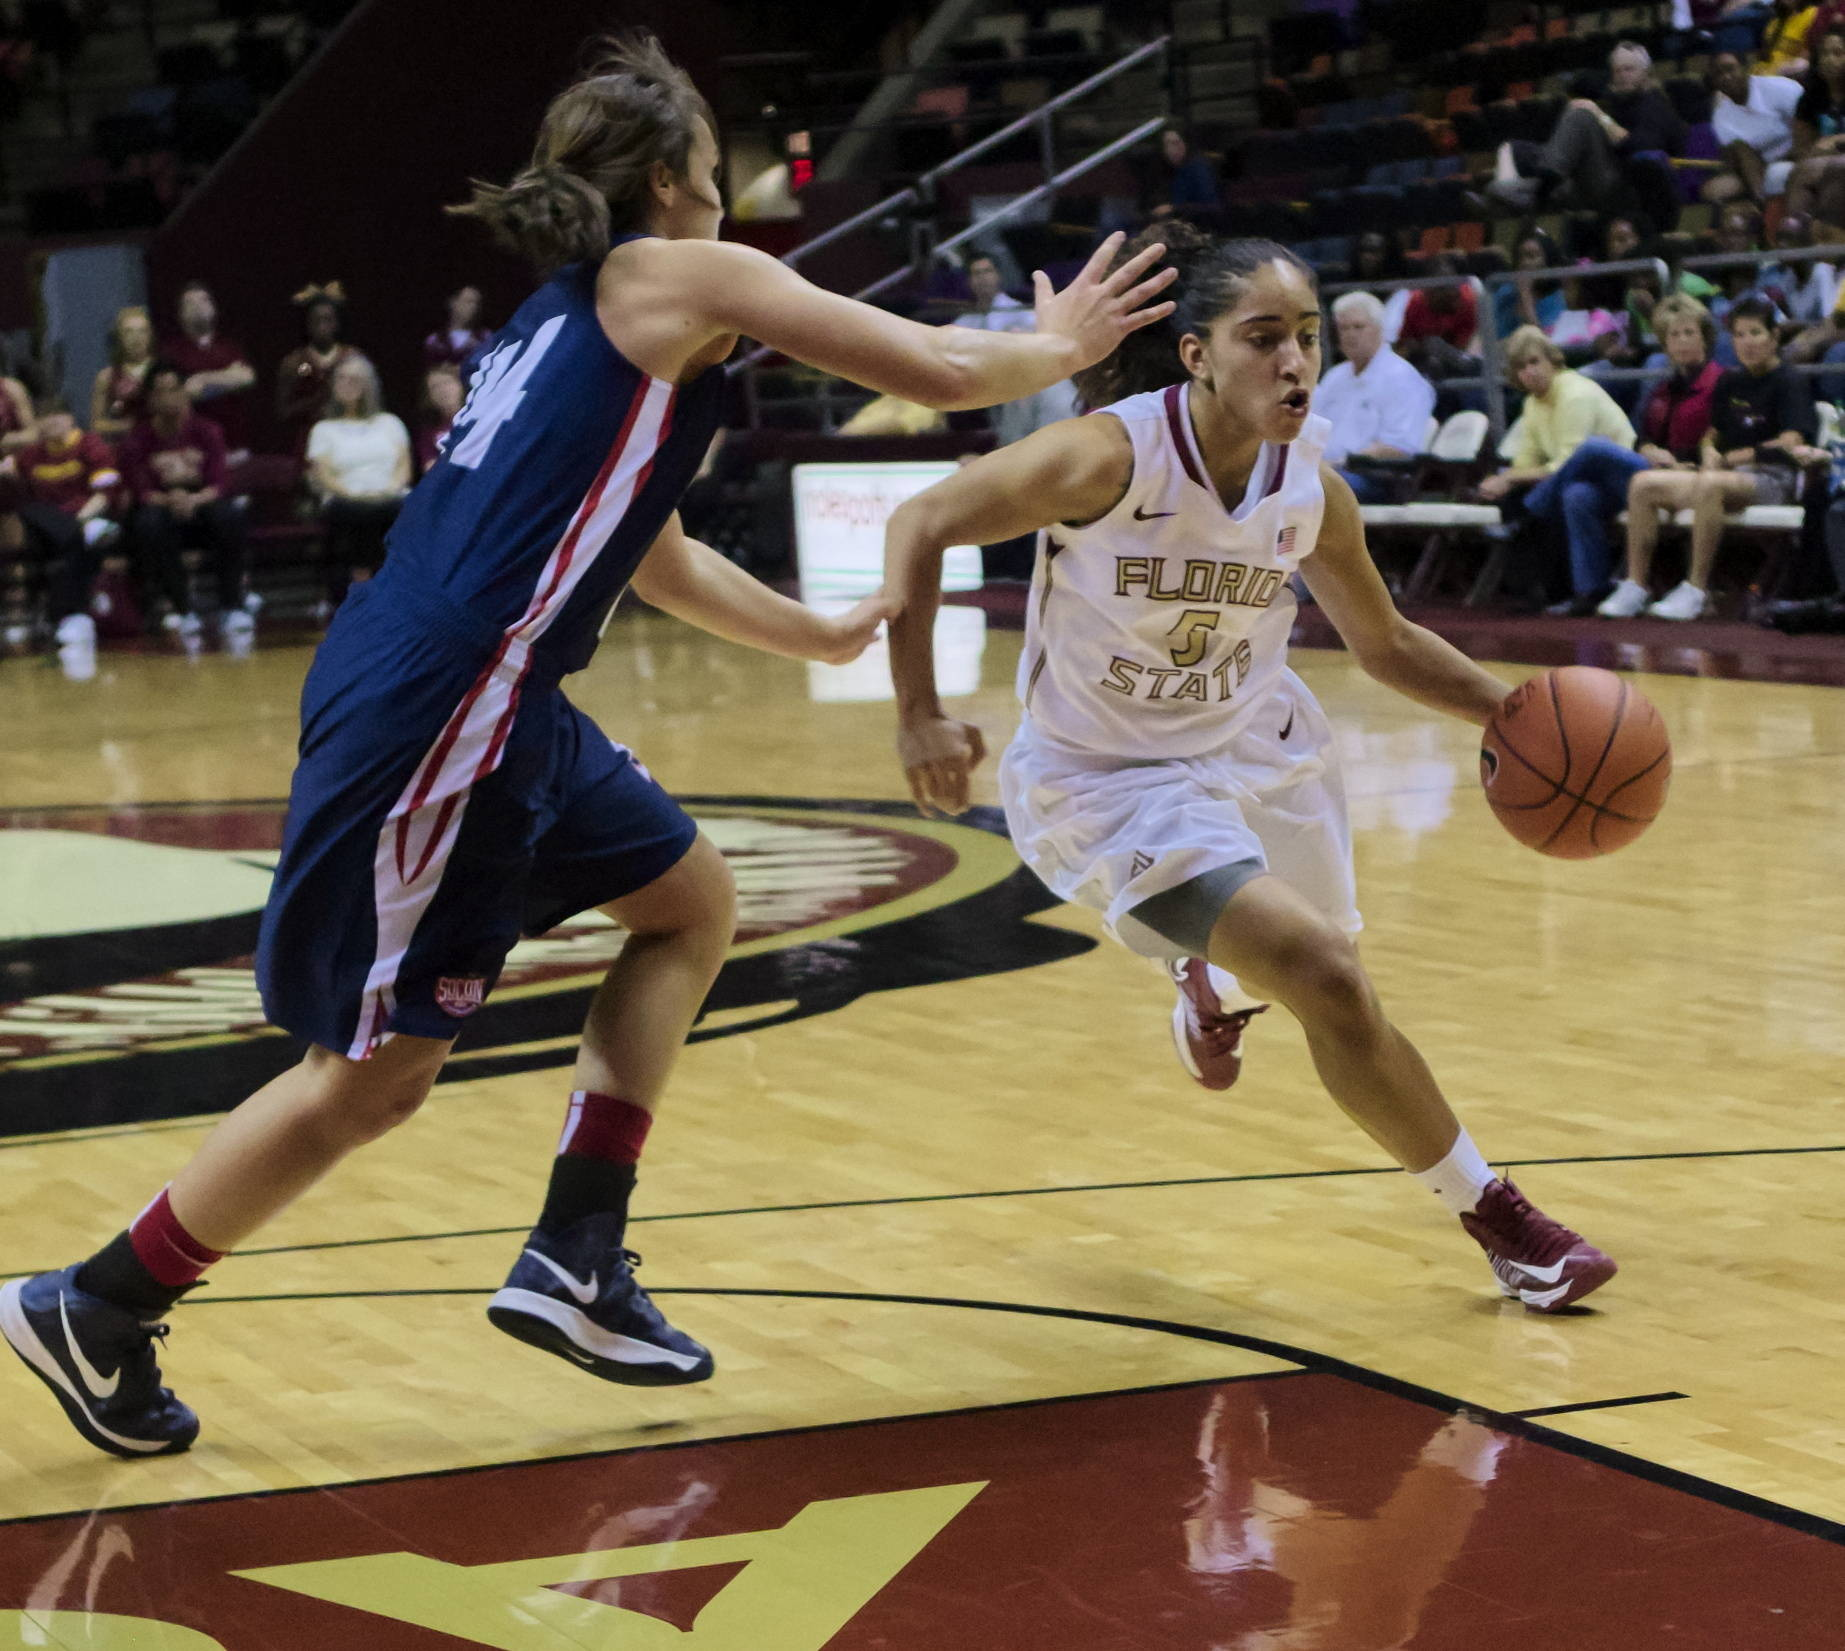 Cheetah Delgado (5), FSU vs Samford, 11/11/12. (Photo by Steve Musco)